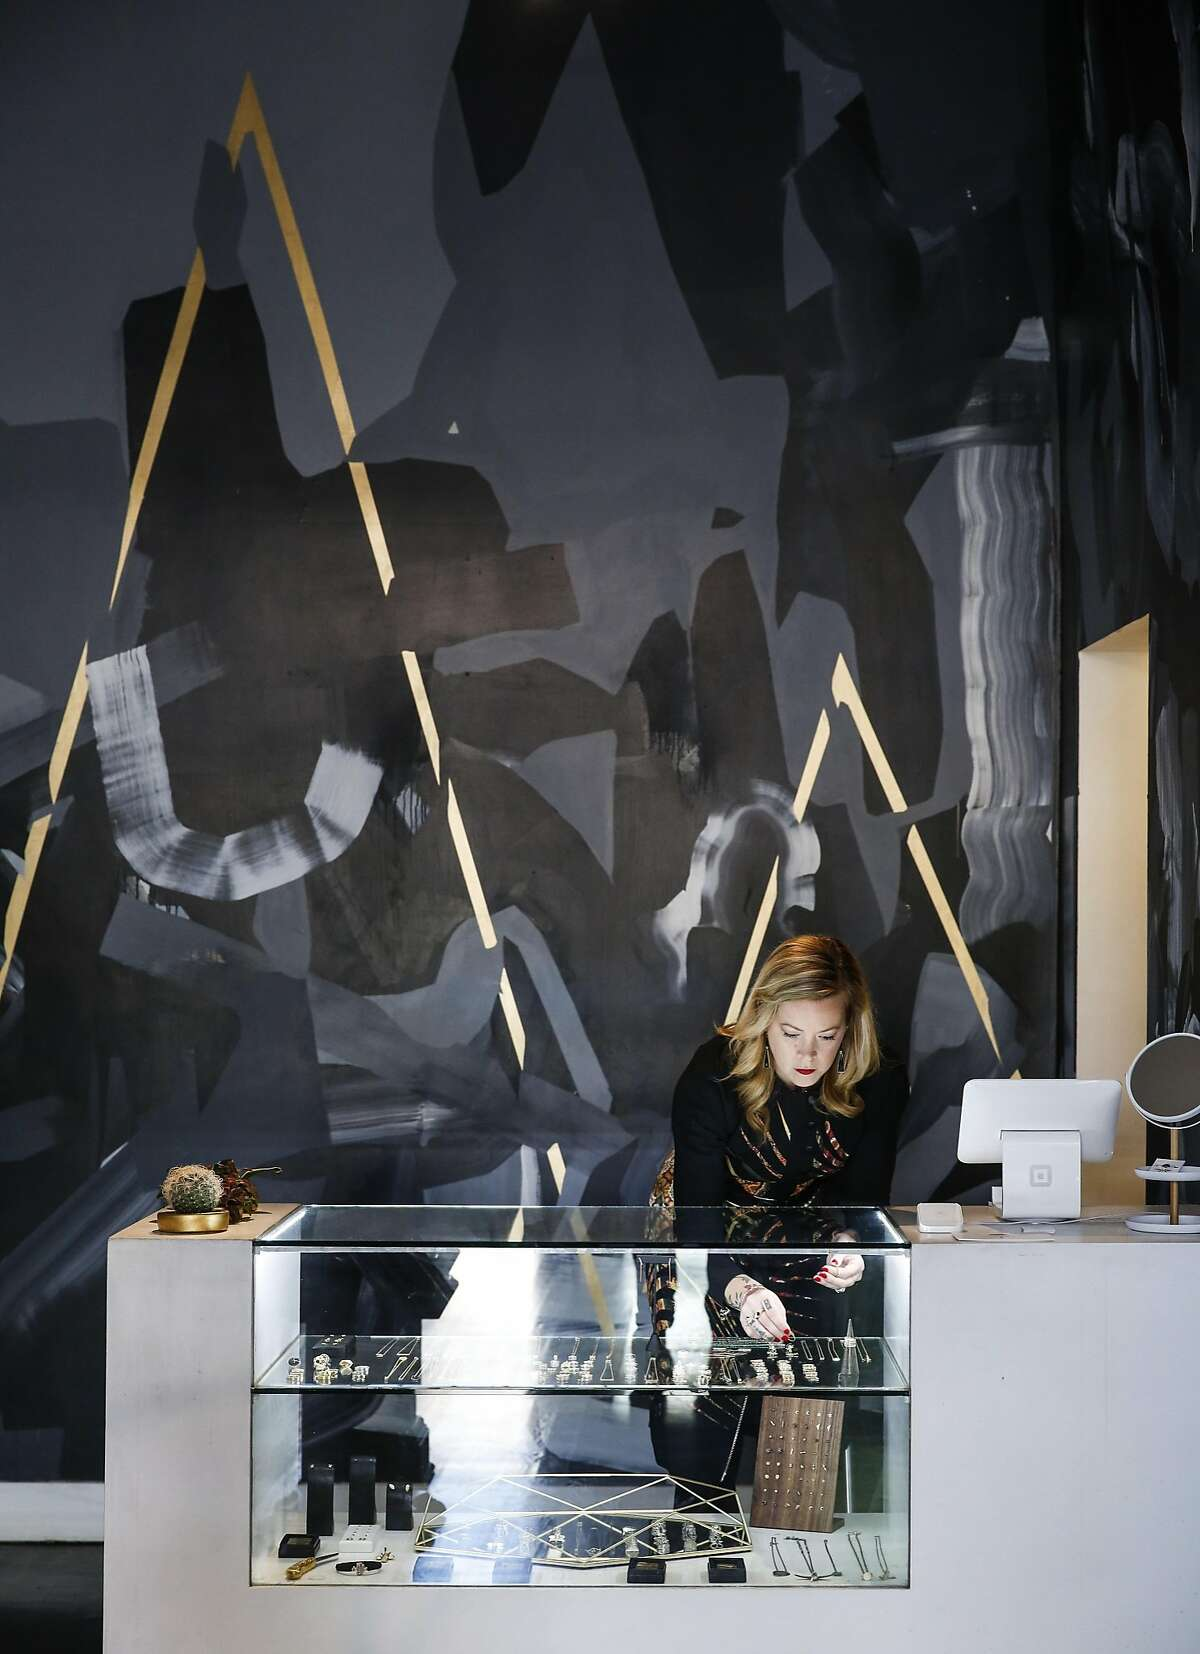 Marie McCarthy, co-owner of Fiat Lux, places jewelry in a display case in front of a mural by Victor Reyes on Friday, Feb. 24, 2017 in San Francisco, Calif.